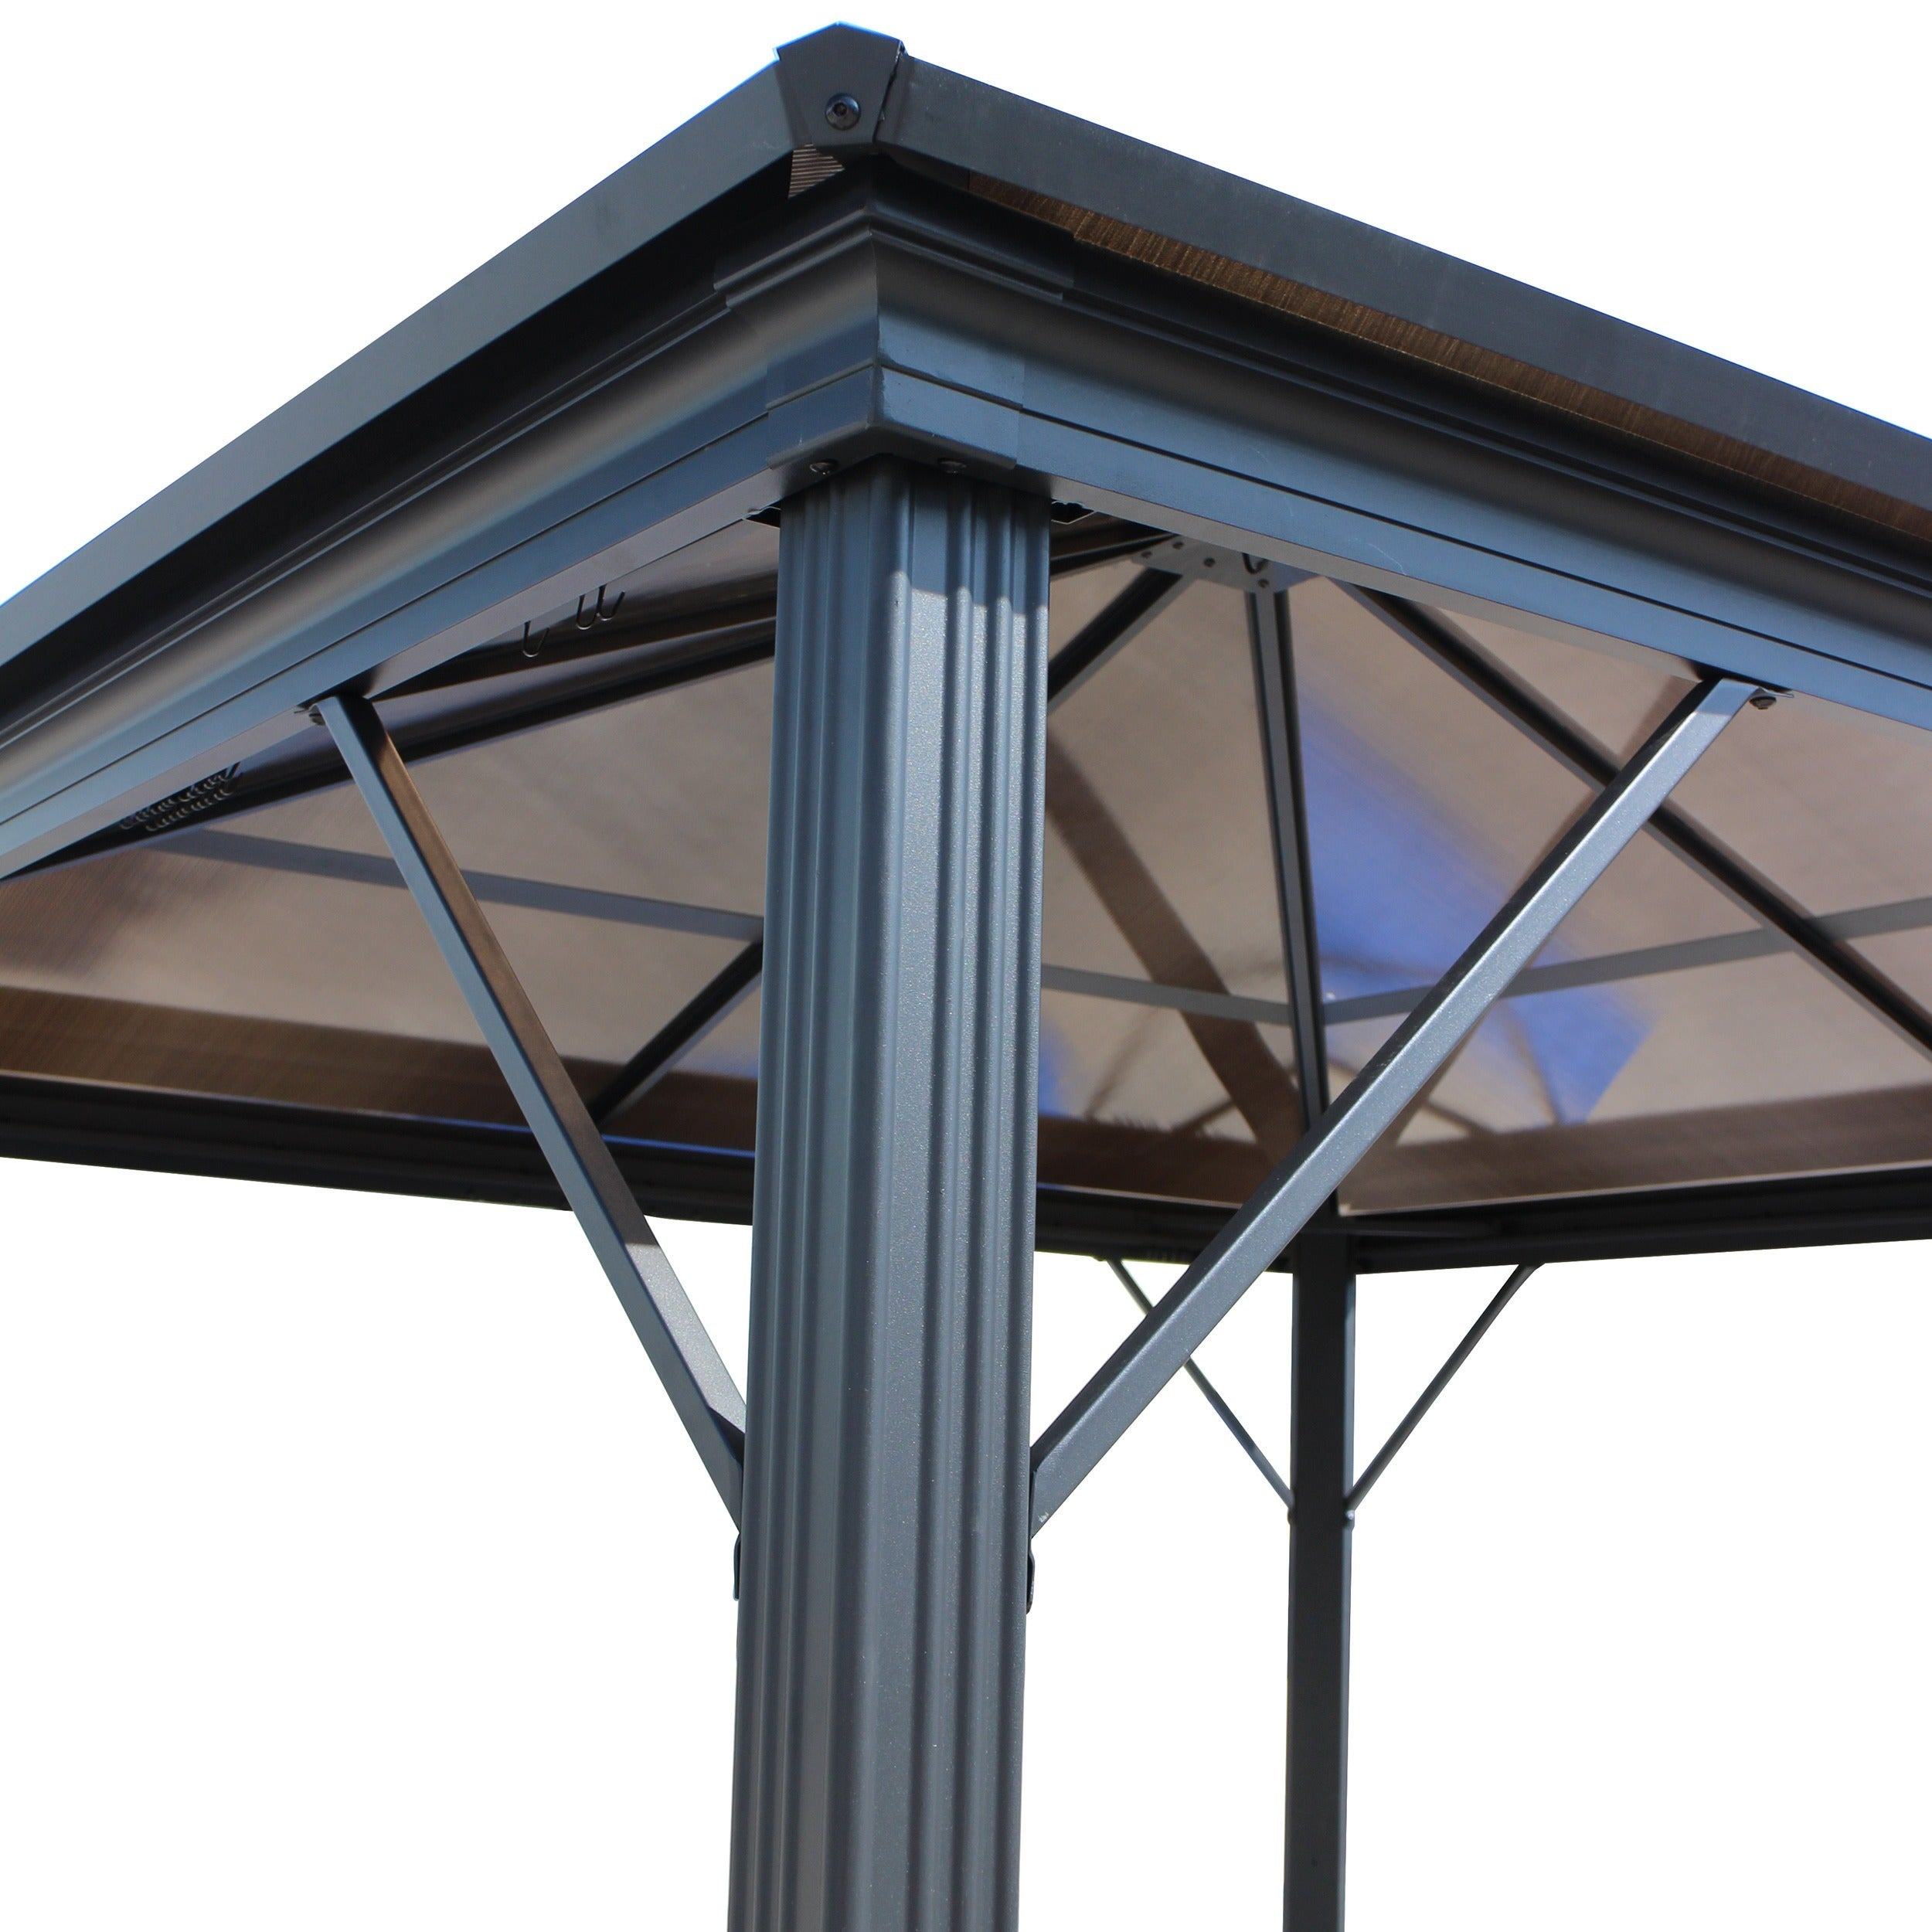 Bailey-Outdoor-10-ft-Aluminum-Gazebo-with-Hardtop-by-Christopher-Knight-Home